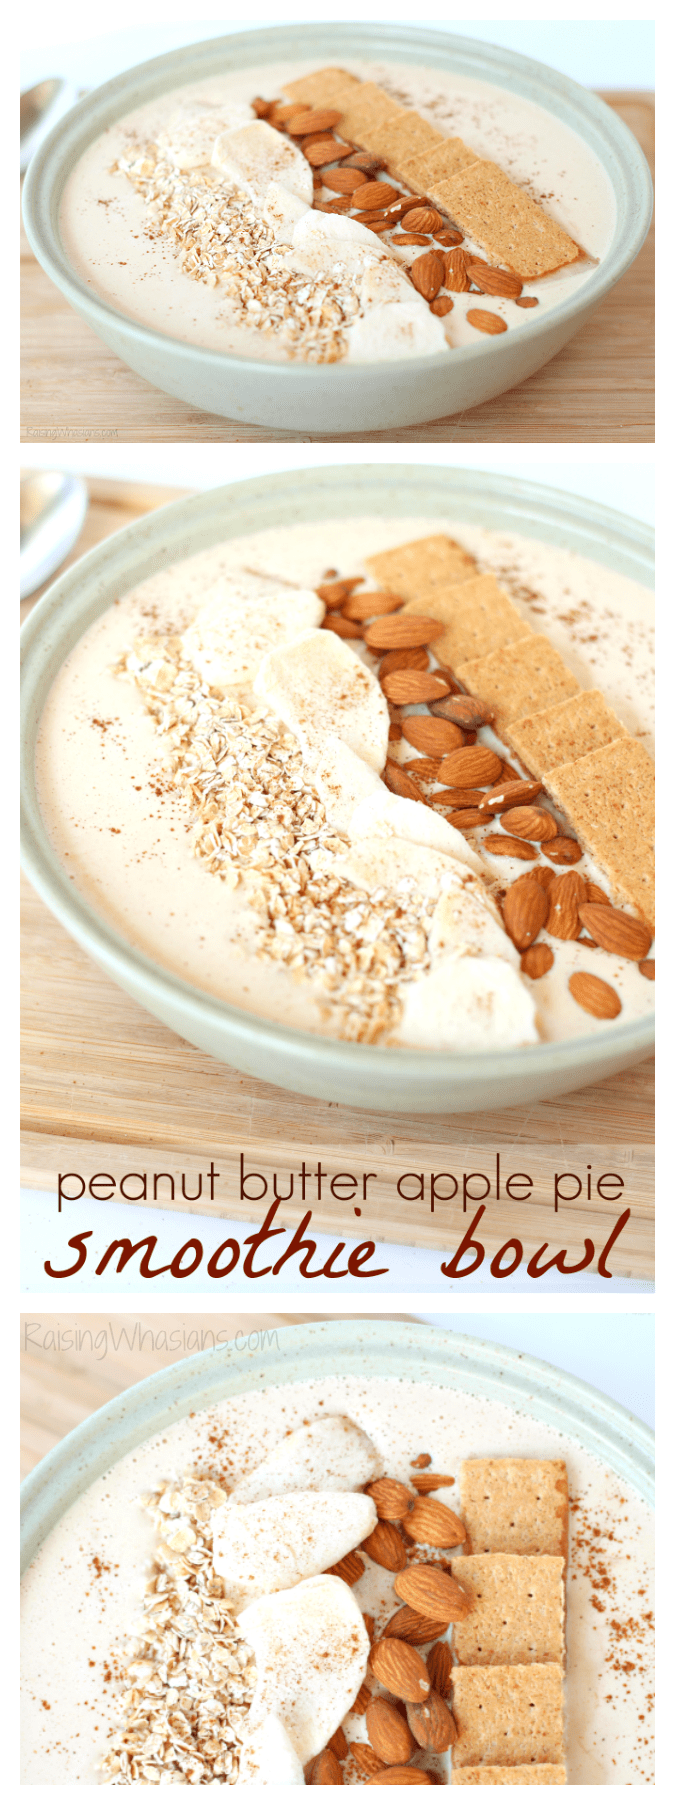 Peanut Butter Apple Pie Smoothie Bowl | Enjoy apple pie for breakfast with this delicious and easy fall inspired smoothie bowl recipe